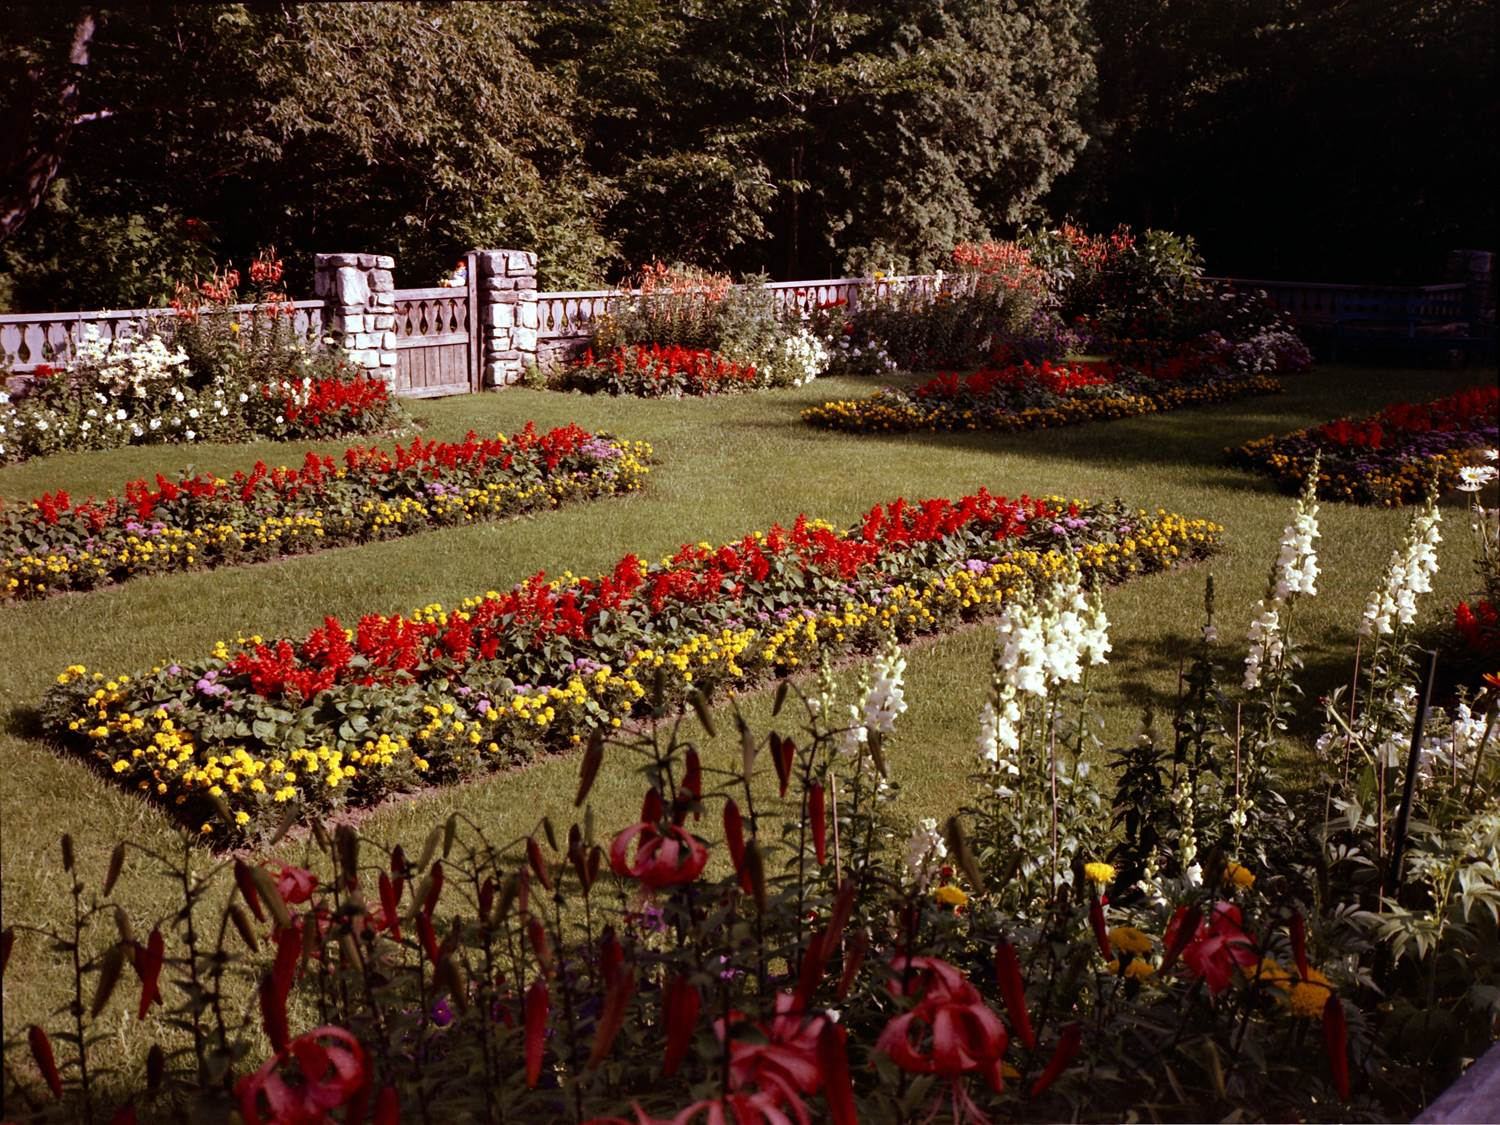 The garden was designed as a space to view tennis matches in the nearby grass courts. In the 1950's, the garden was planted with annual flowers. Source: Lawrence University.